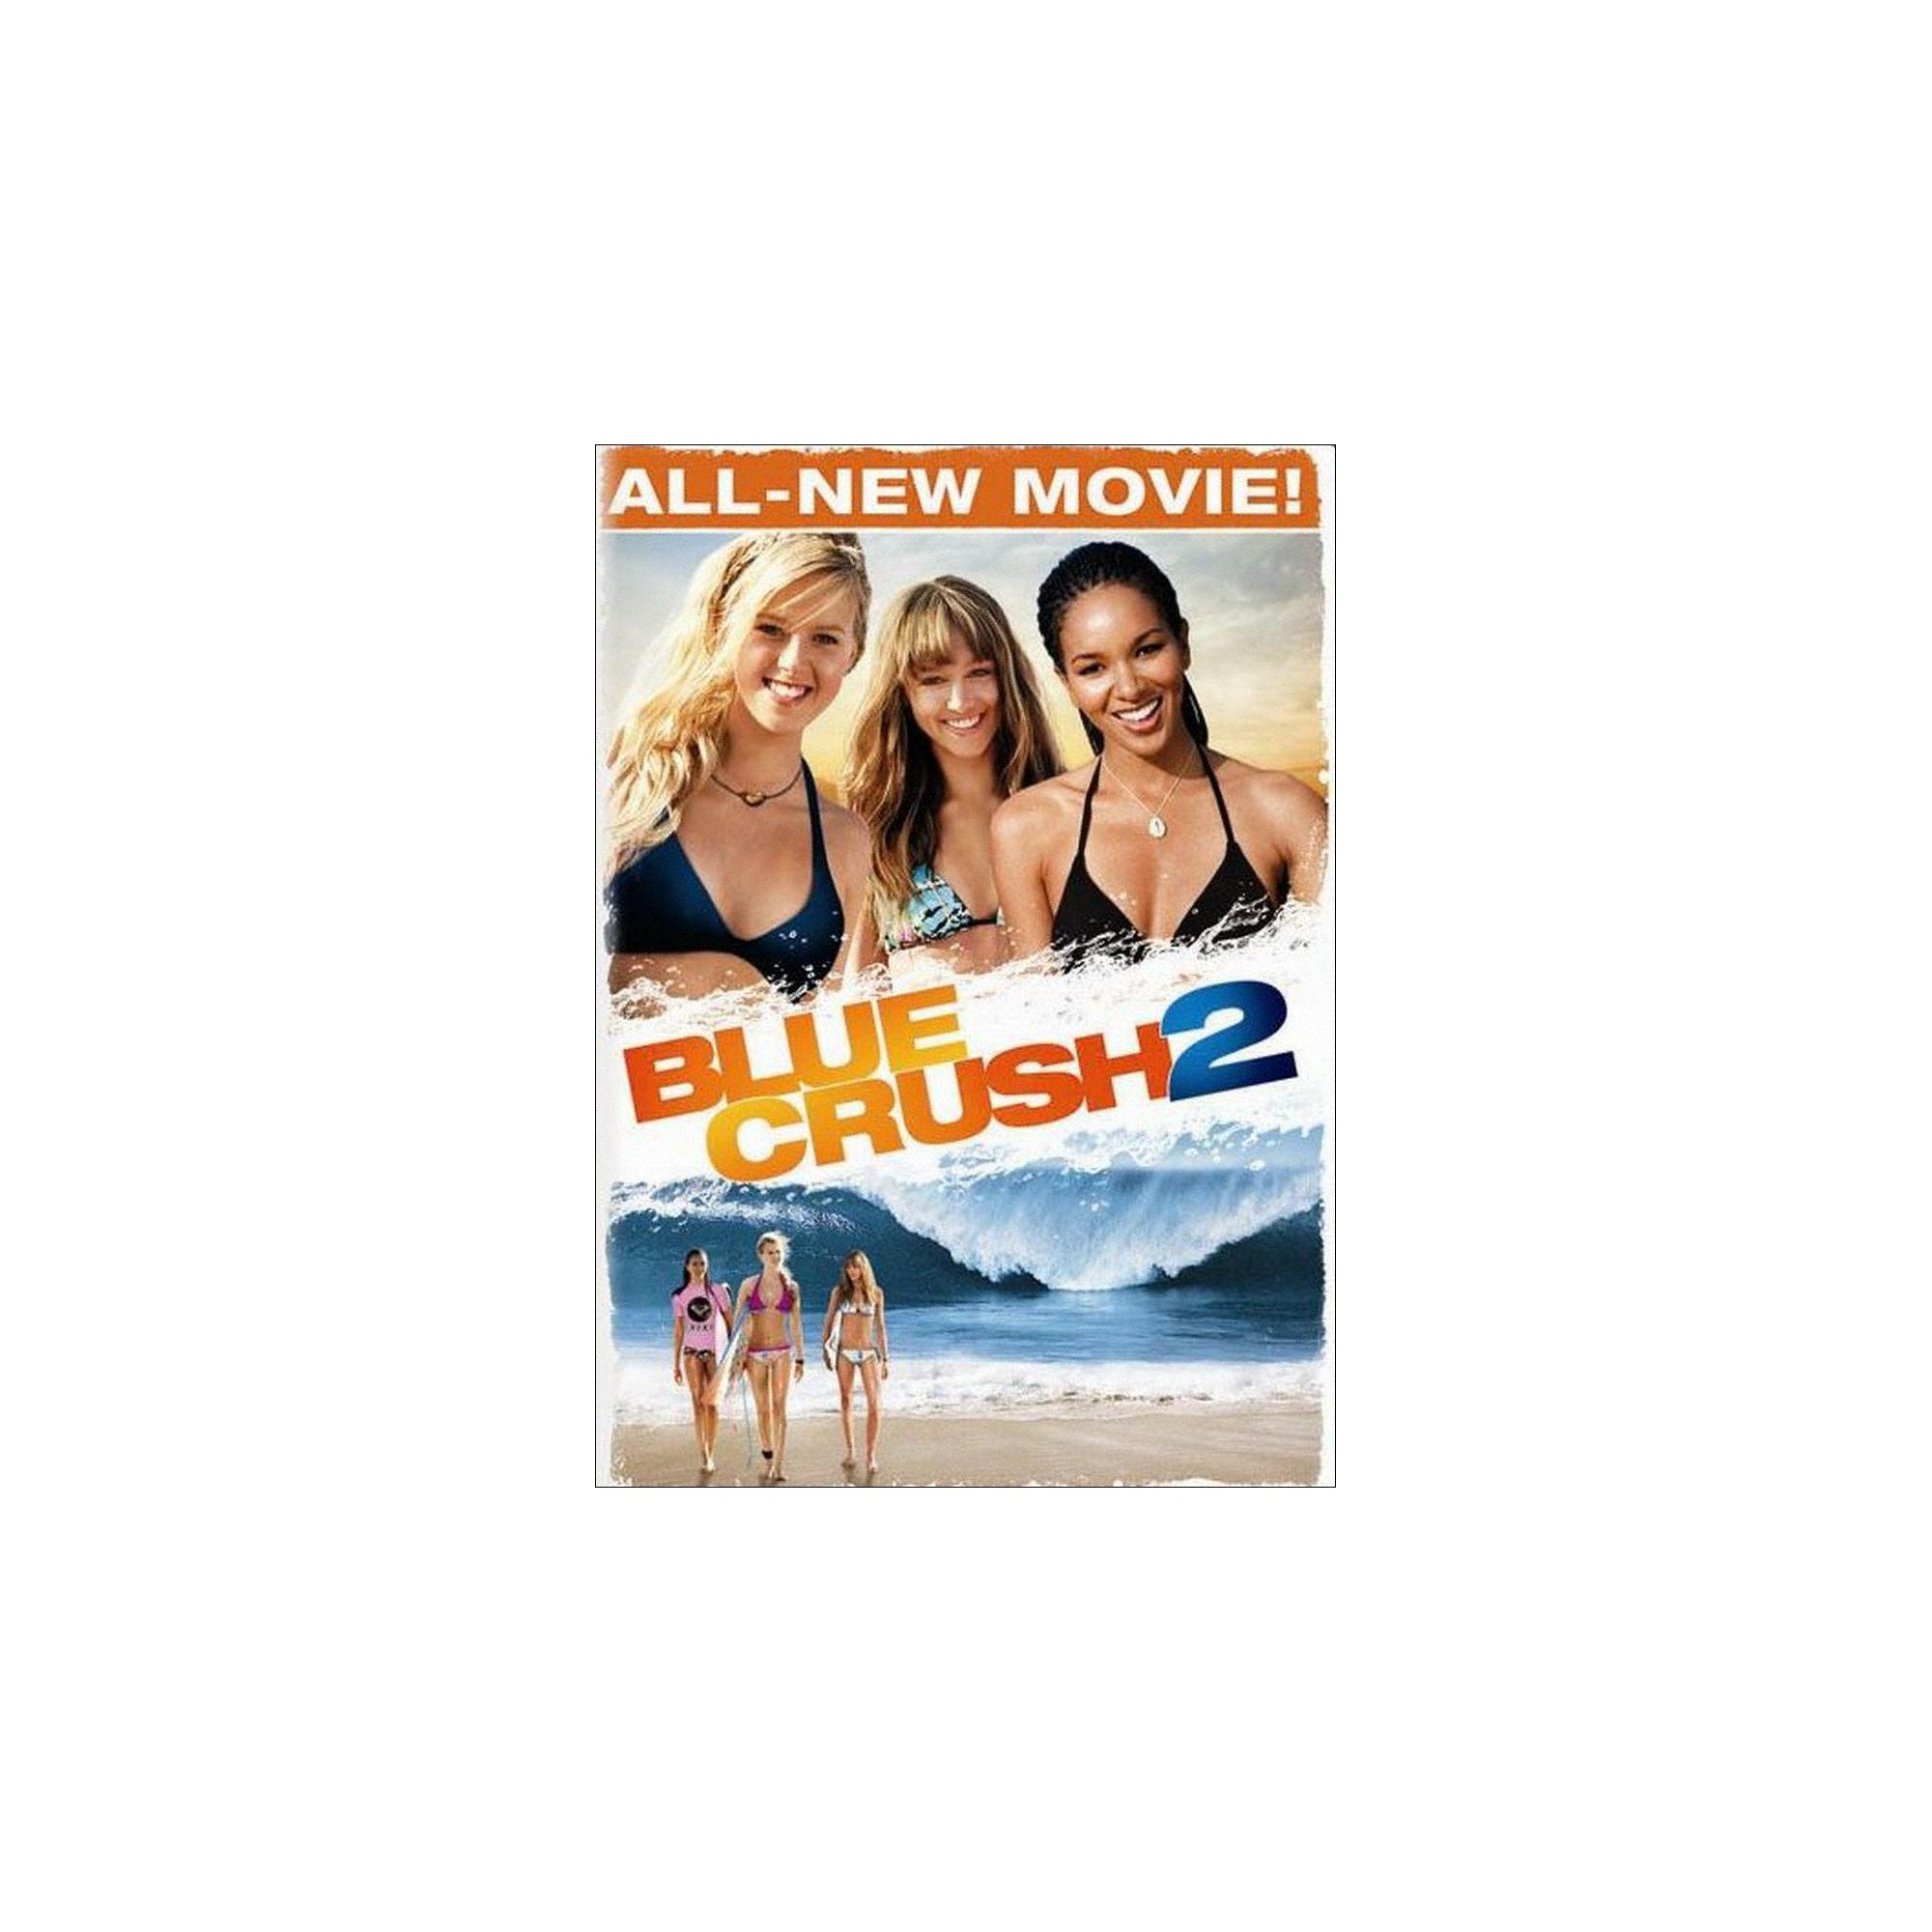 Blue Crush 2 Dvd Video Products Blue Crush New Movies Crushes